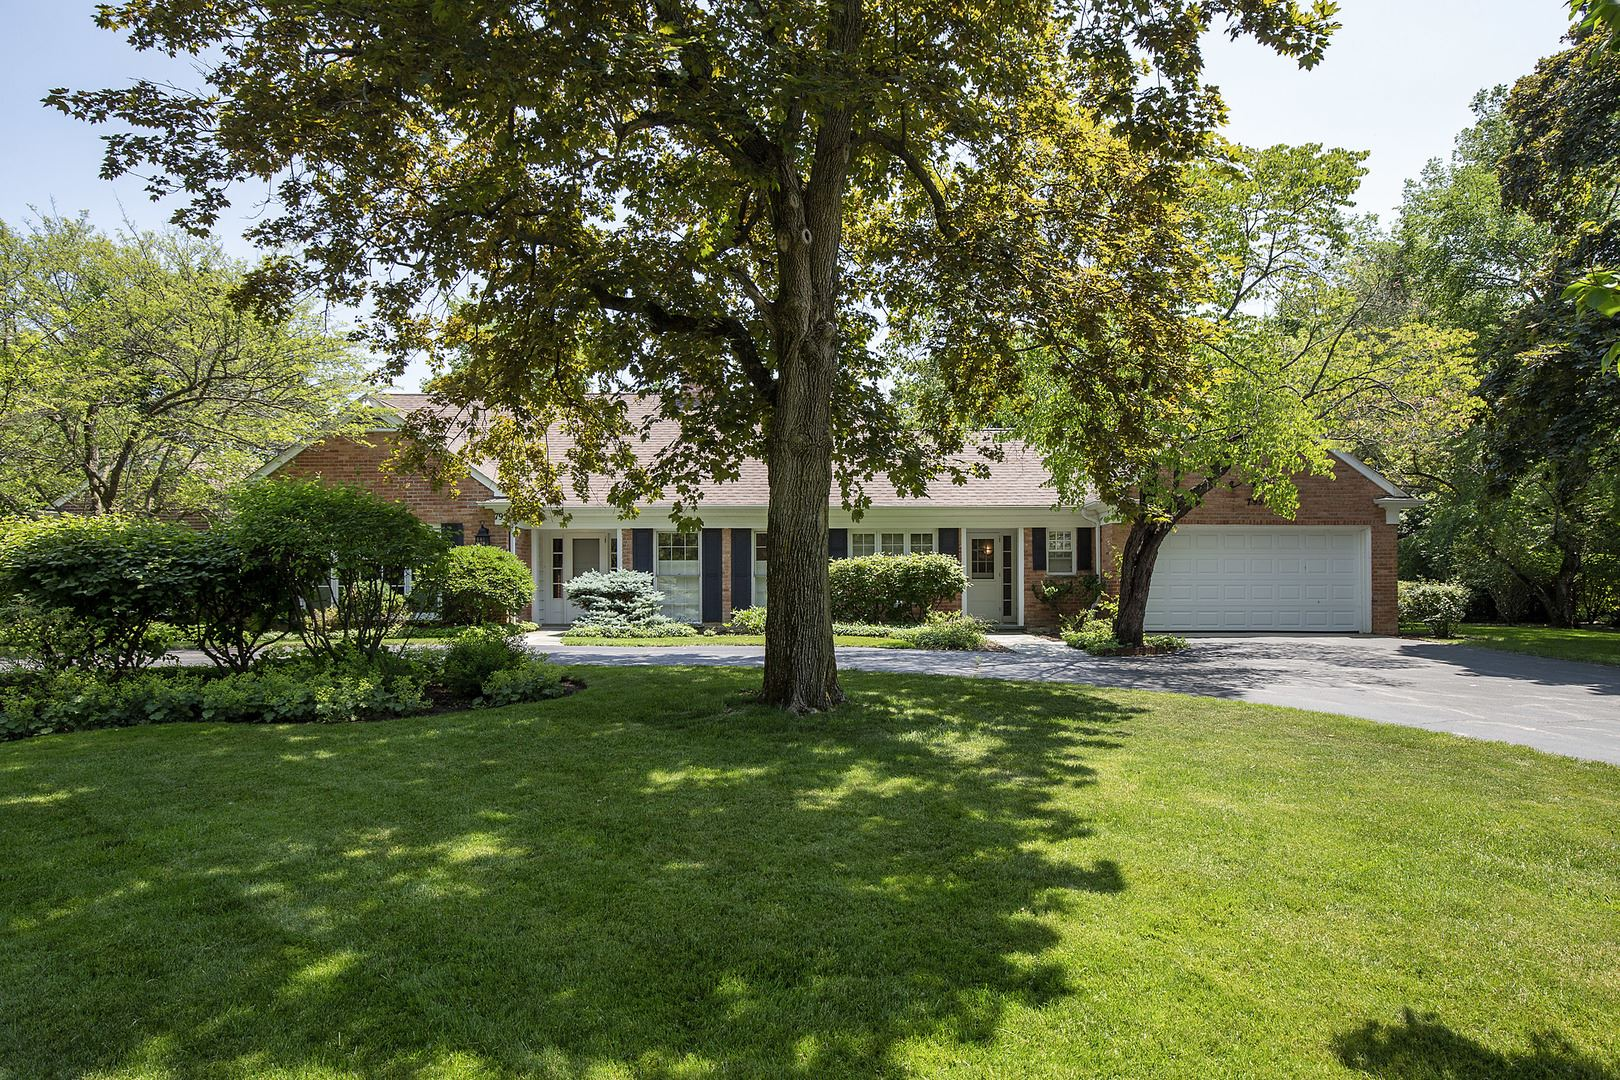 795 Heather Lane, Winnetka, IL 60093 - #: 10757708